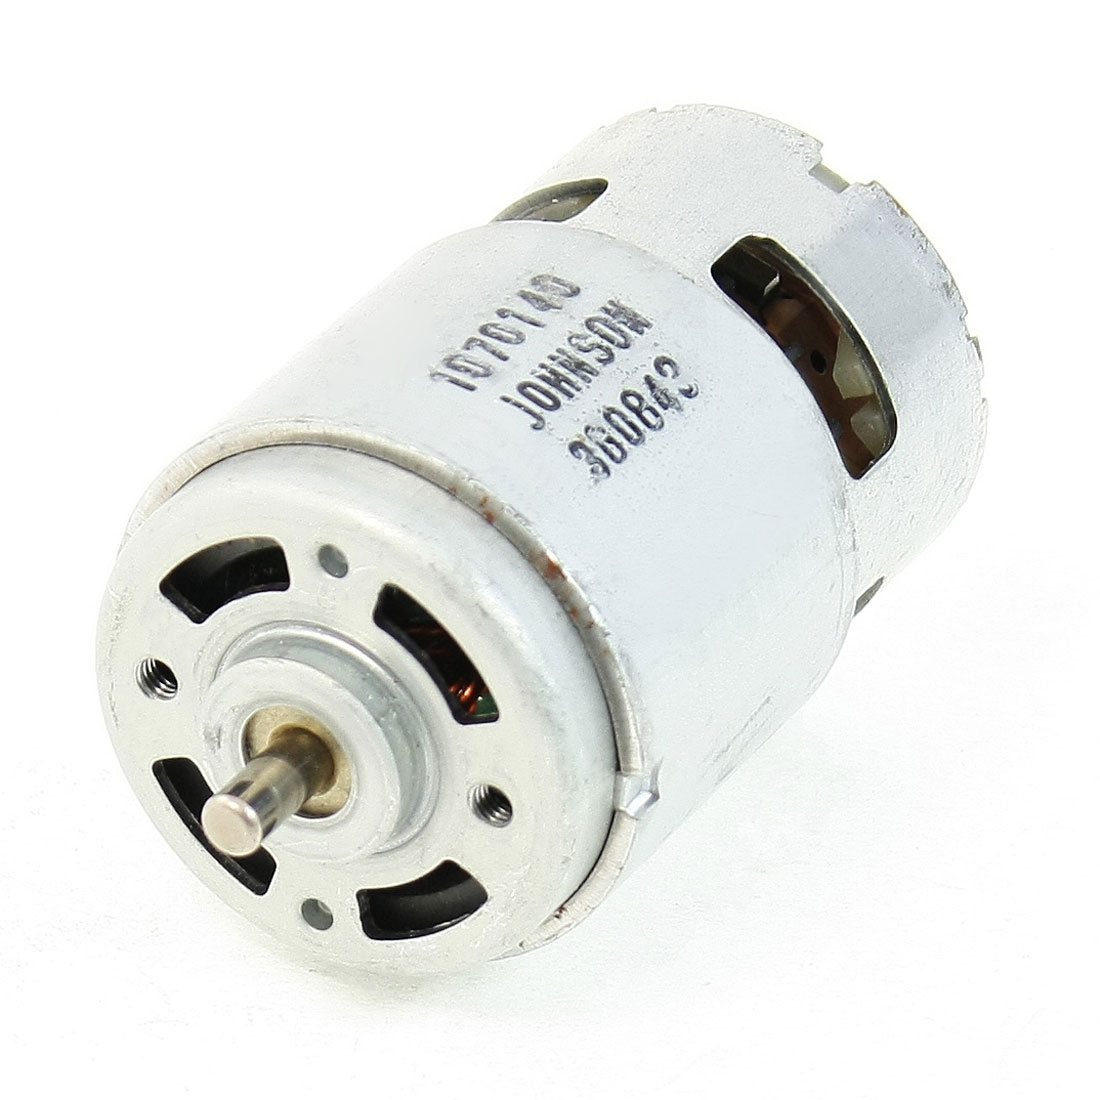 DC 12V 3600RPM 5mmx9mm Dia Shaft 2 Terminals 2P Motor Replacement Parts